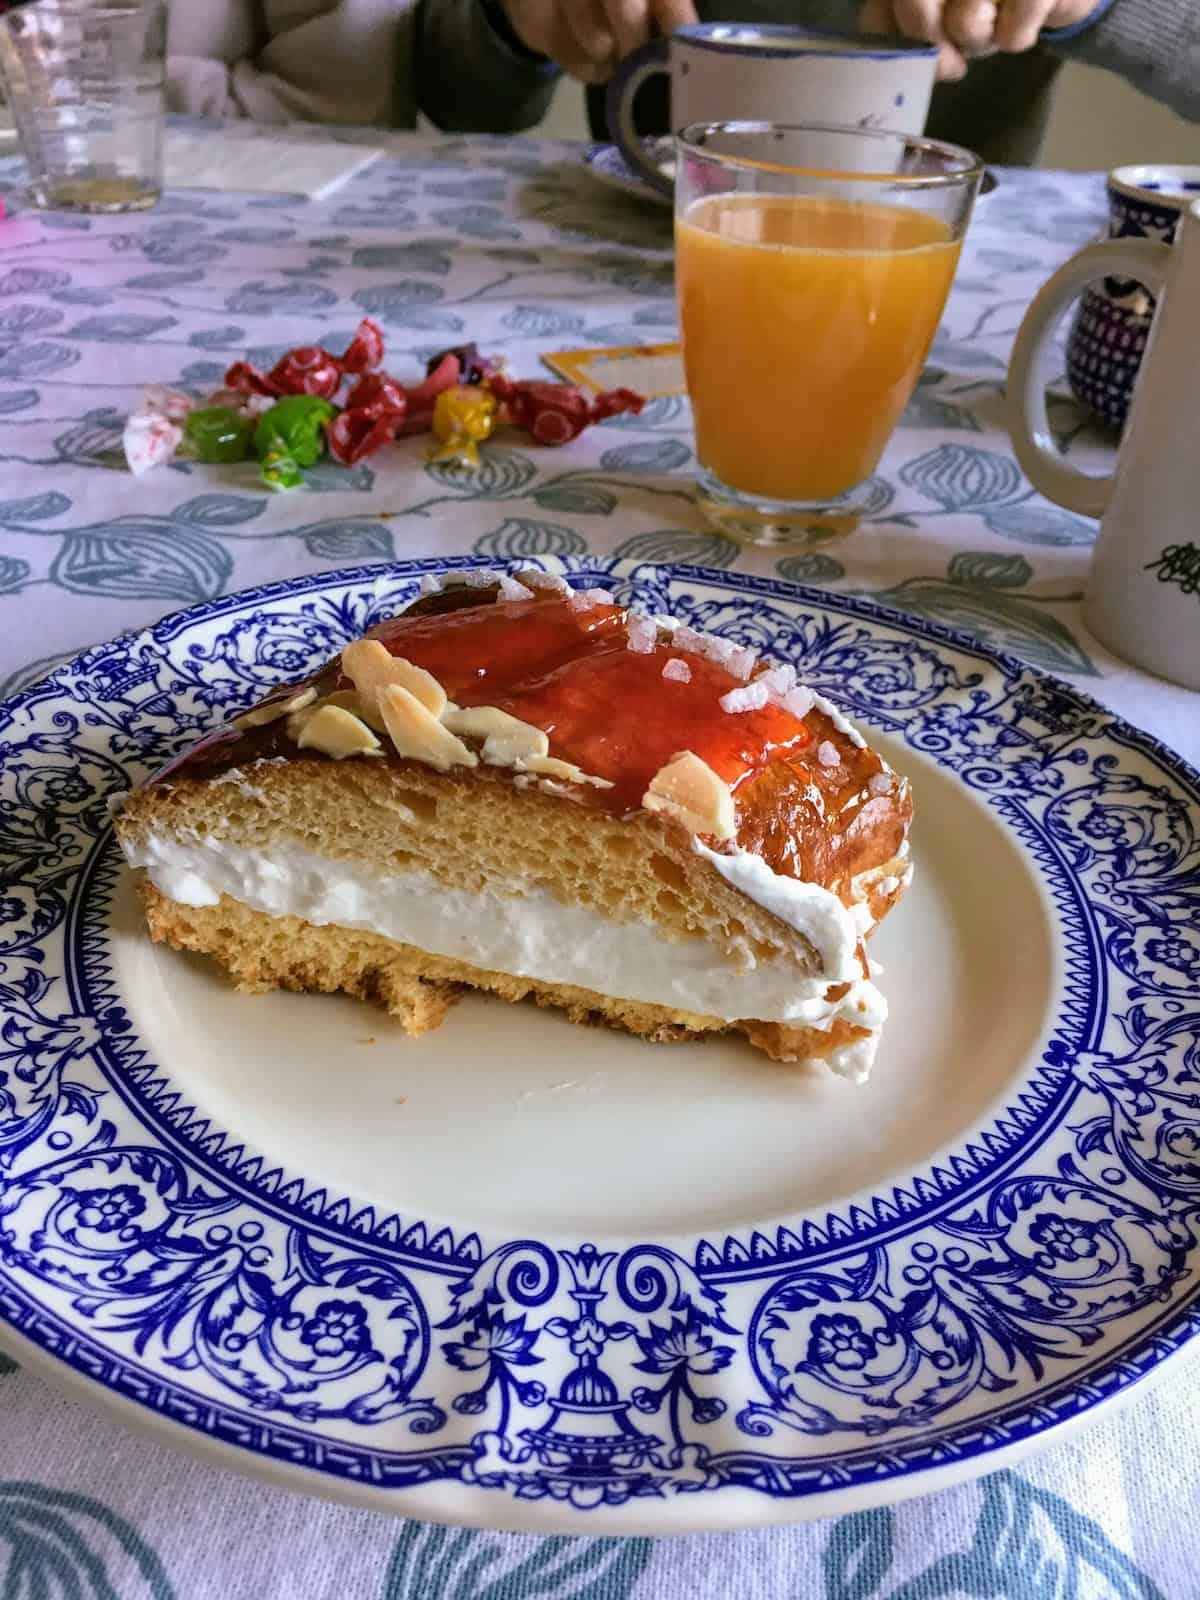 A cream-filled slice of Spanish king cake on a blue and white plate